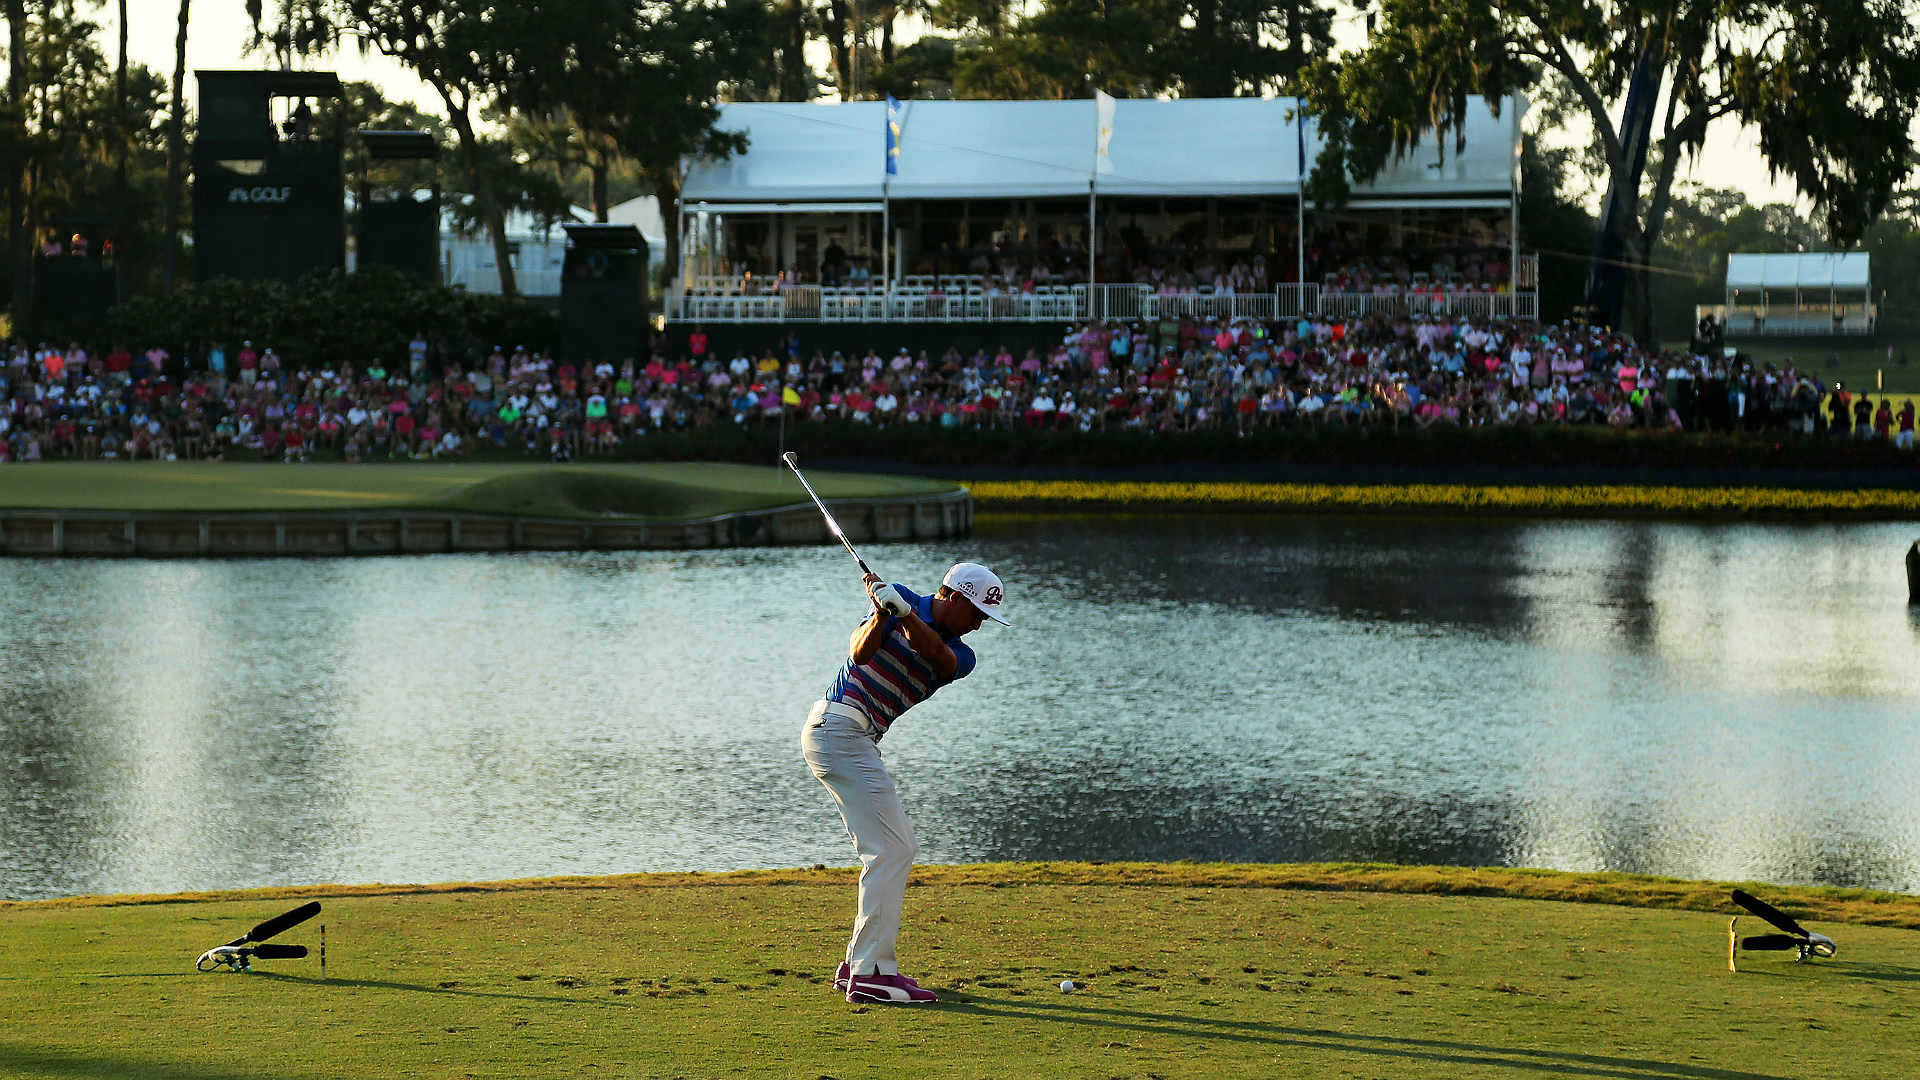 Best bets for the Players Championship